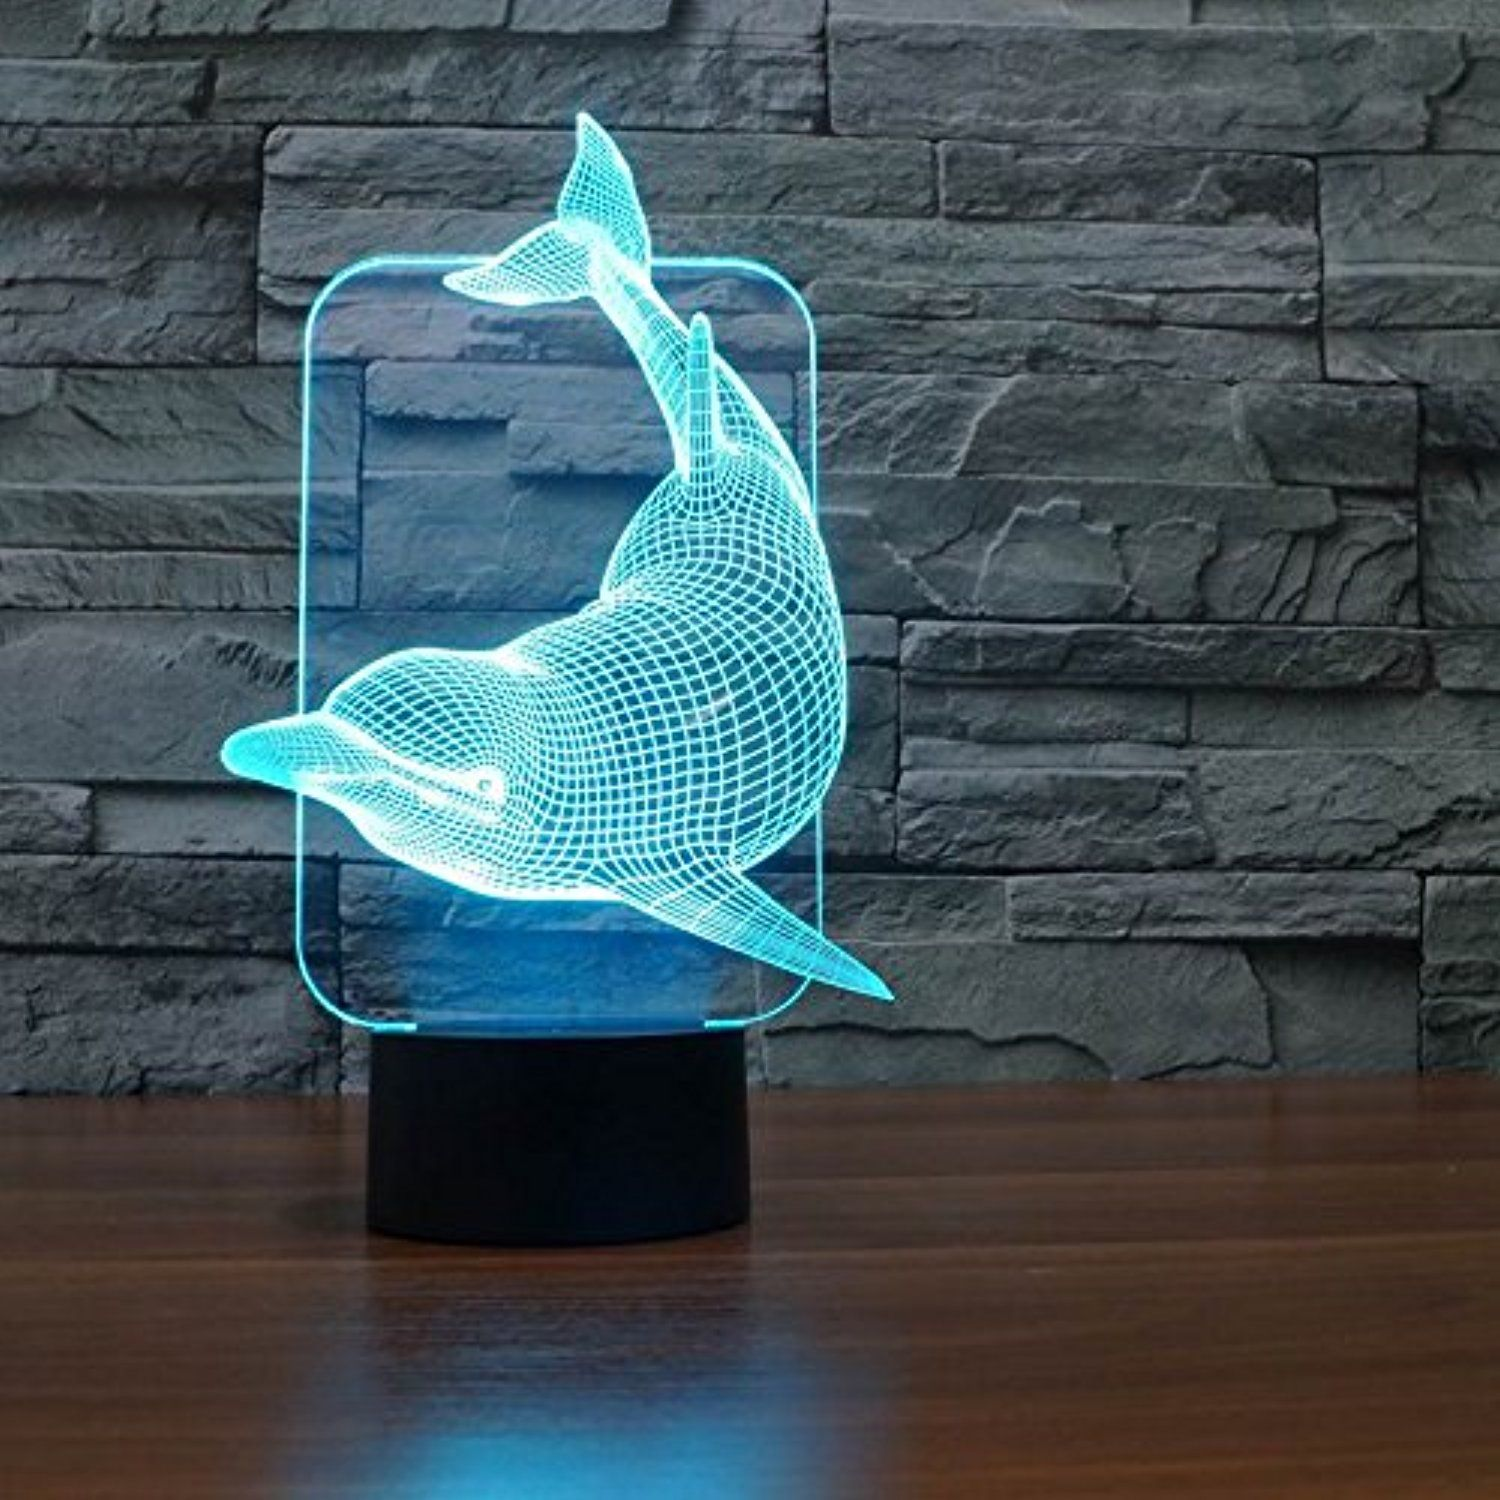 Saiam 3d Lamp Desk Table Light Cute Lovely Dolphin Shapes 7 Colors Amazing Optical Illusion Led Lamp Art Sculpture Lig 3d Led Night Light Lamp Night Light Lamp